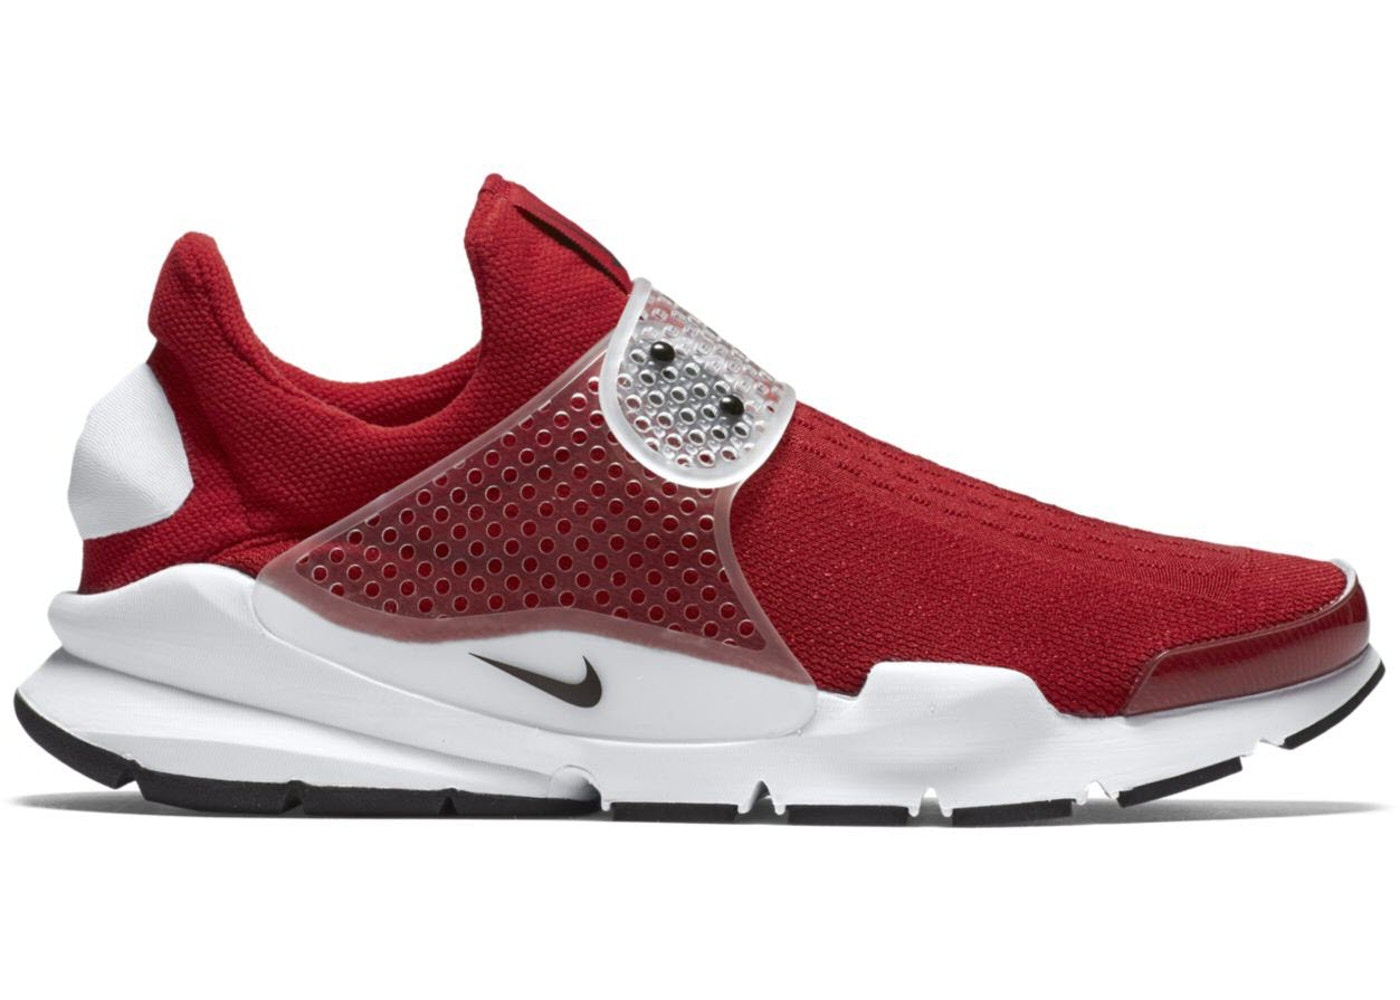 418d44a1 Nike Sock Dart Gym Red - 819686-601